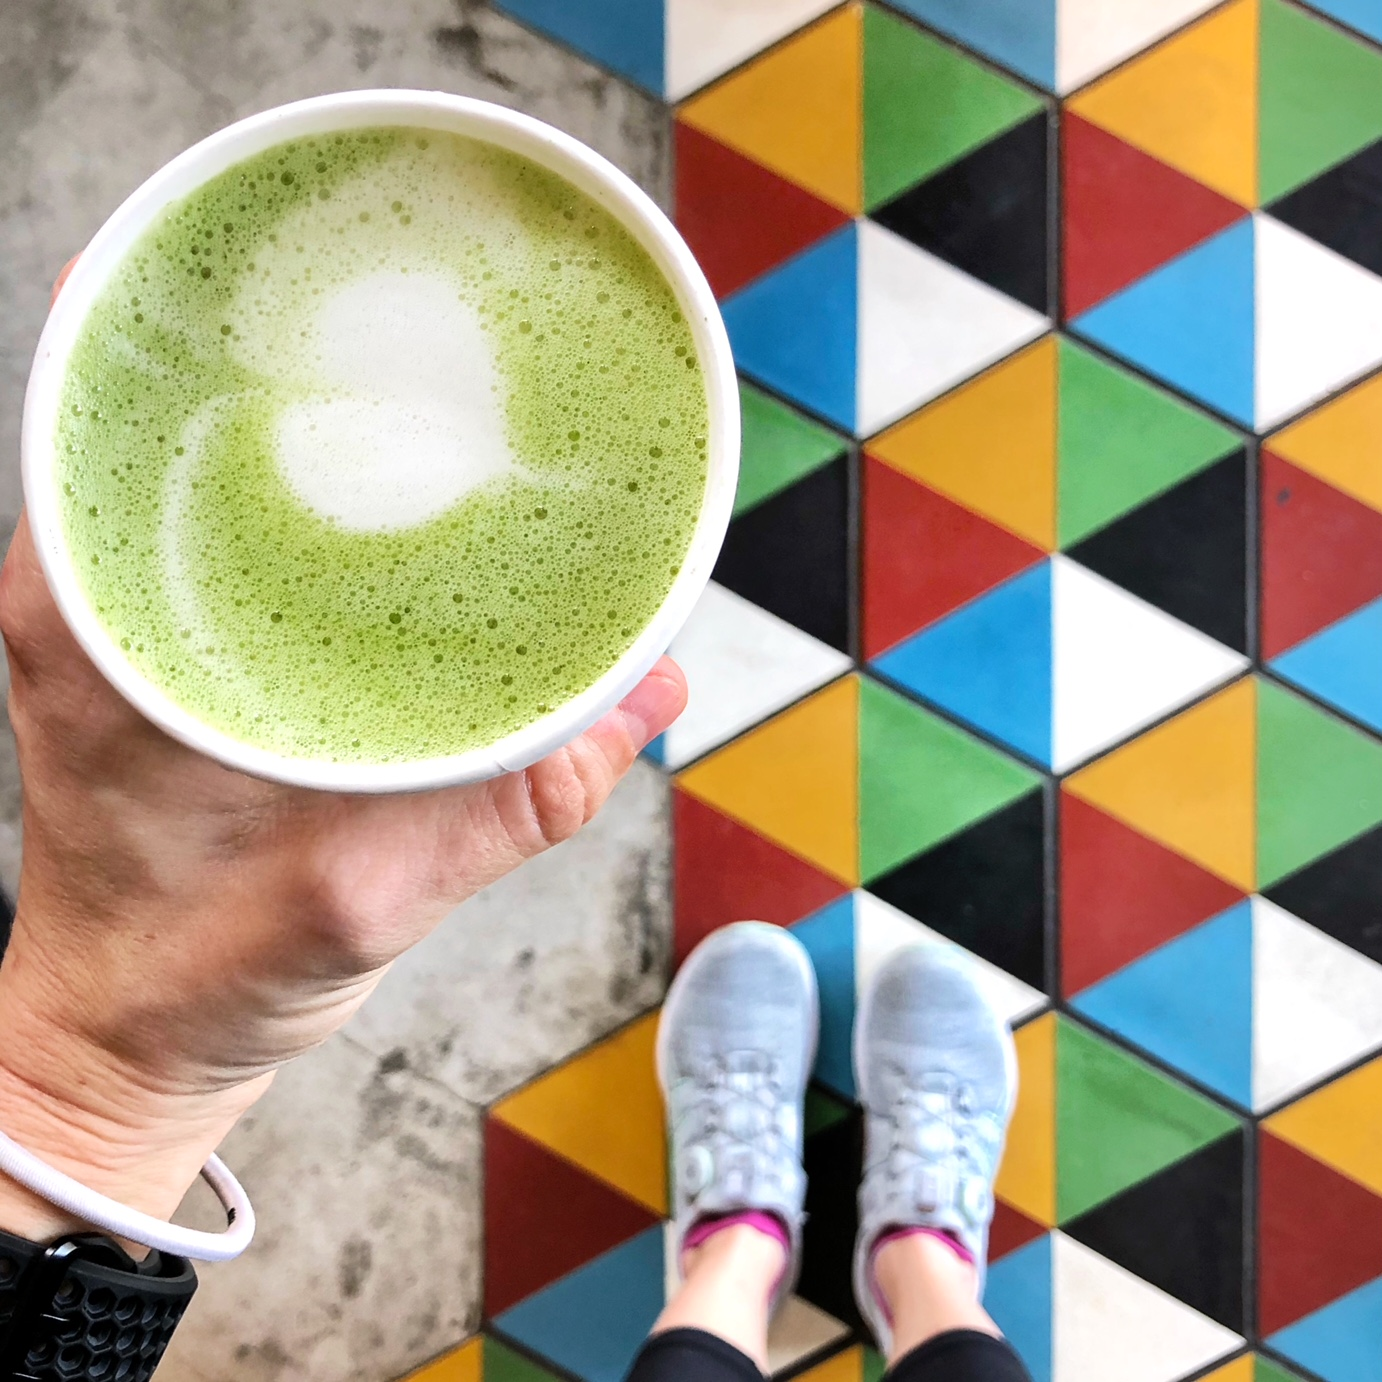 Coffee and matcha were staples to keeping energy high throughout a low-calorie day.{ }(Image: Amanda Shapin)